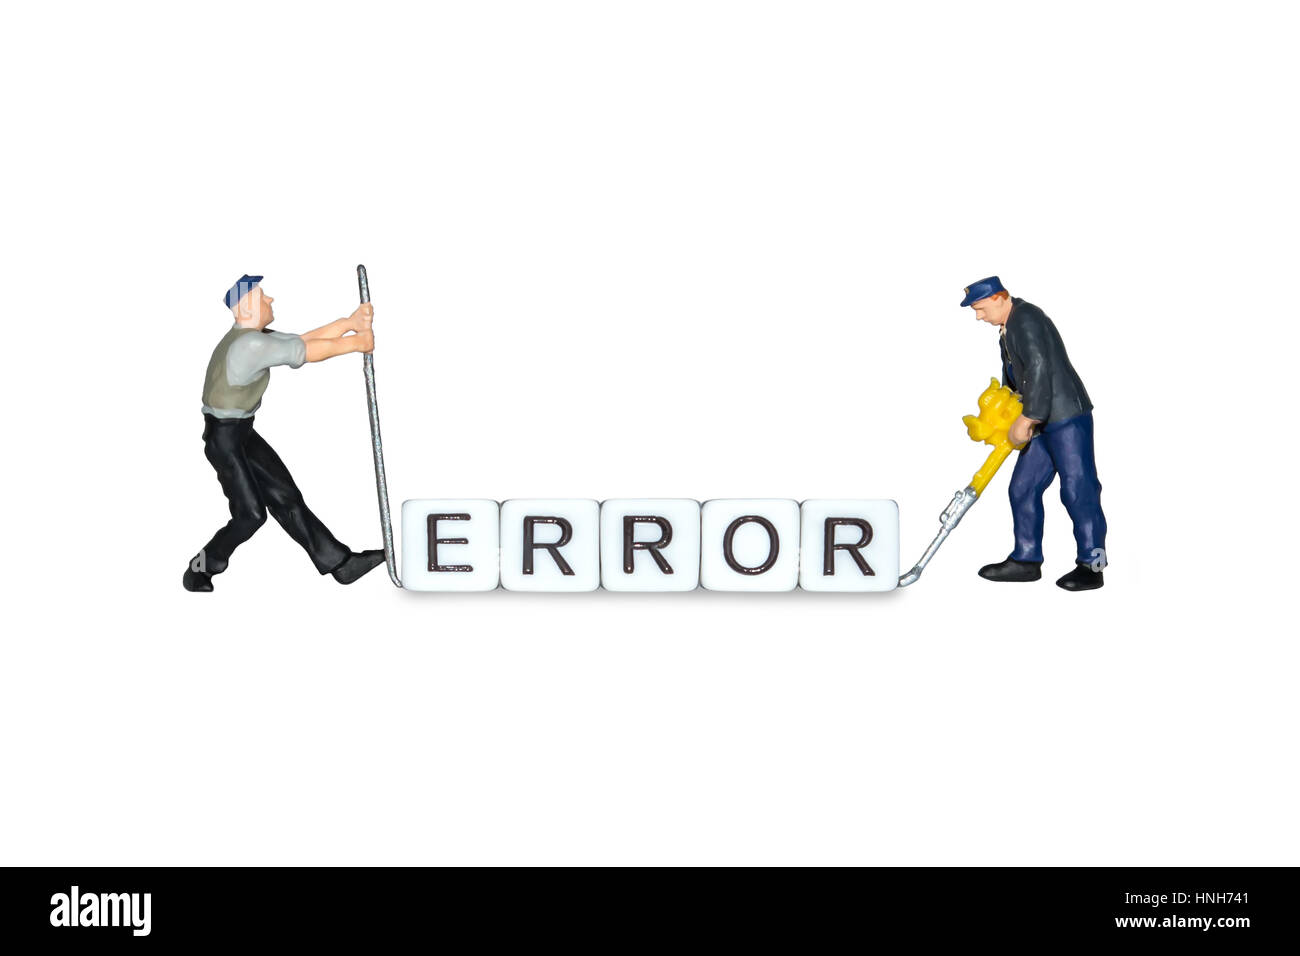 Miniature people. The word error of the cubes. Miniature workers. Human figures, toys. Error page sign. - Stock Image